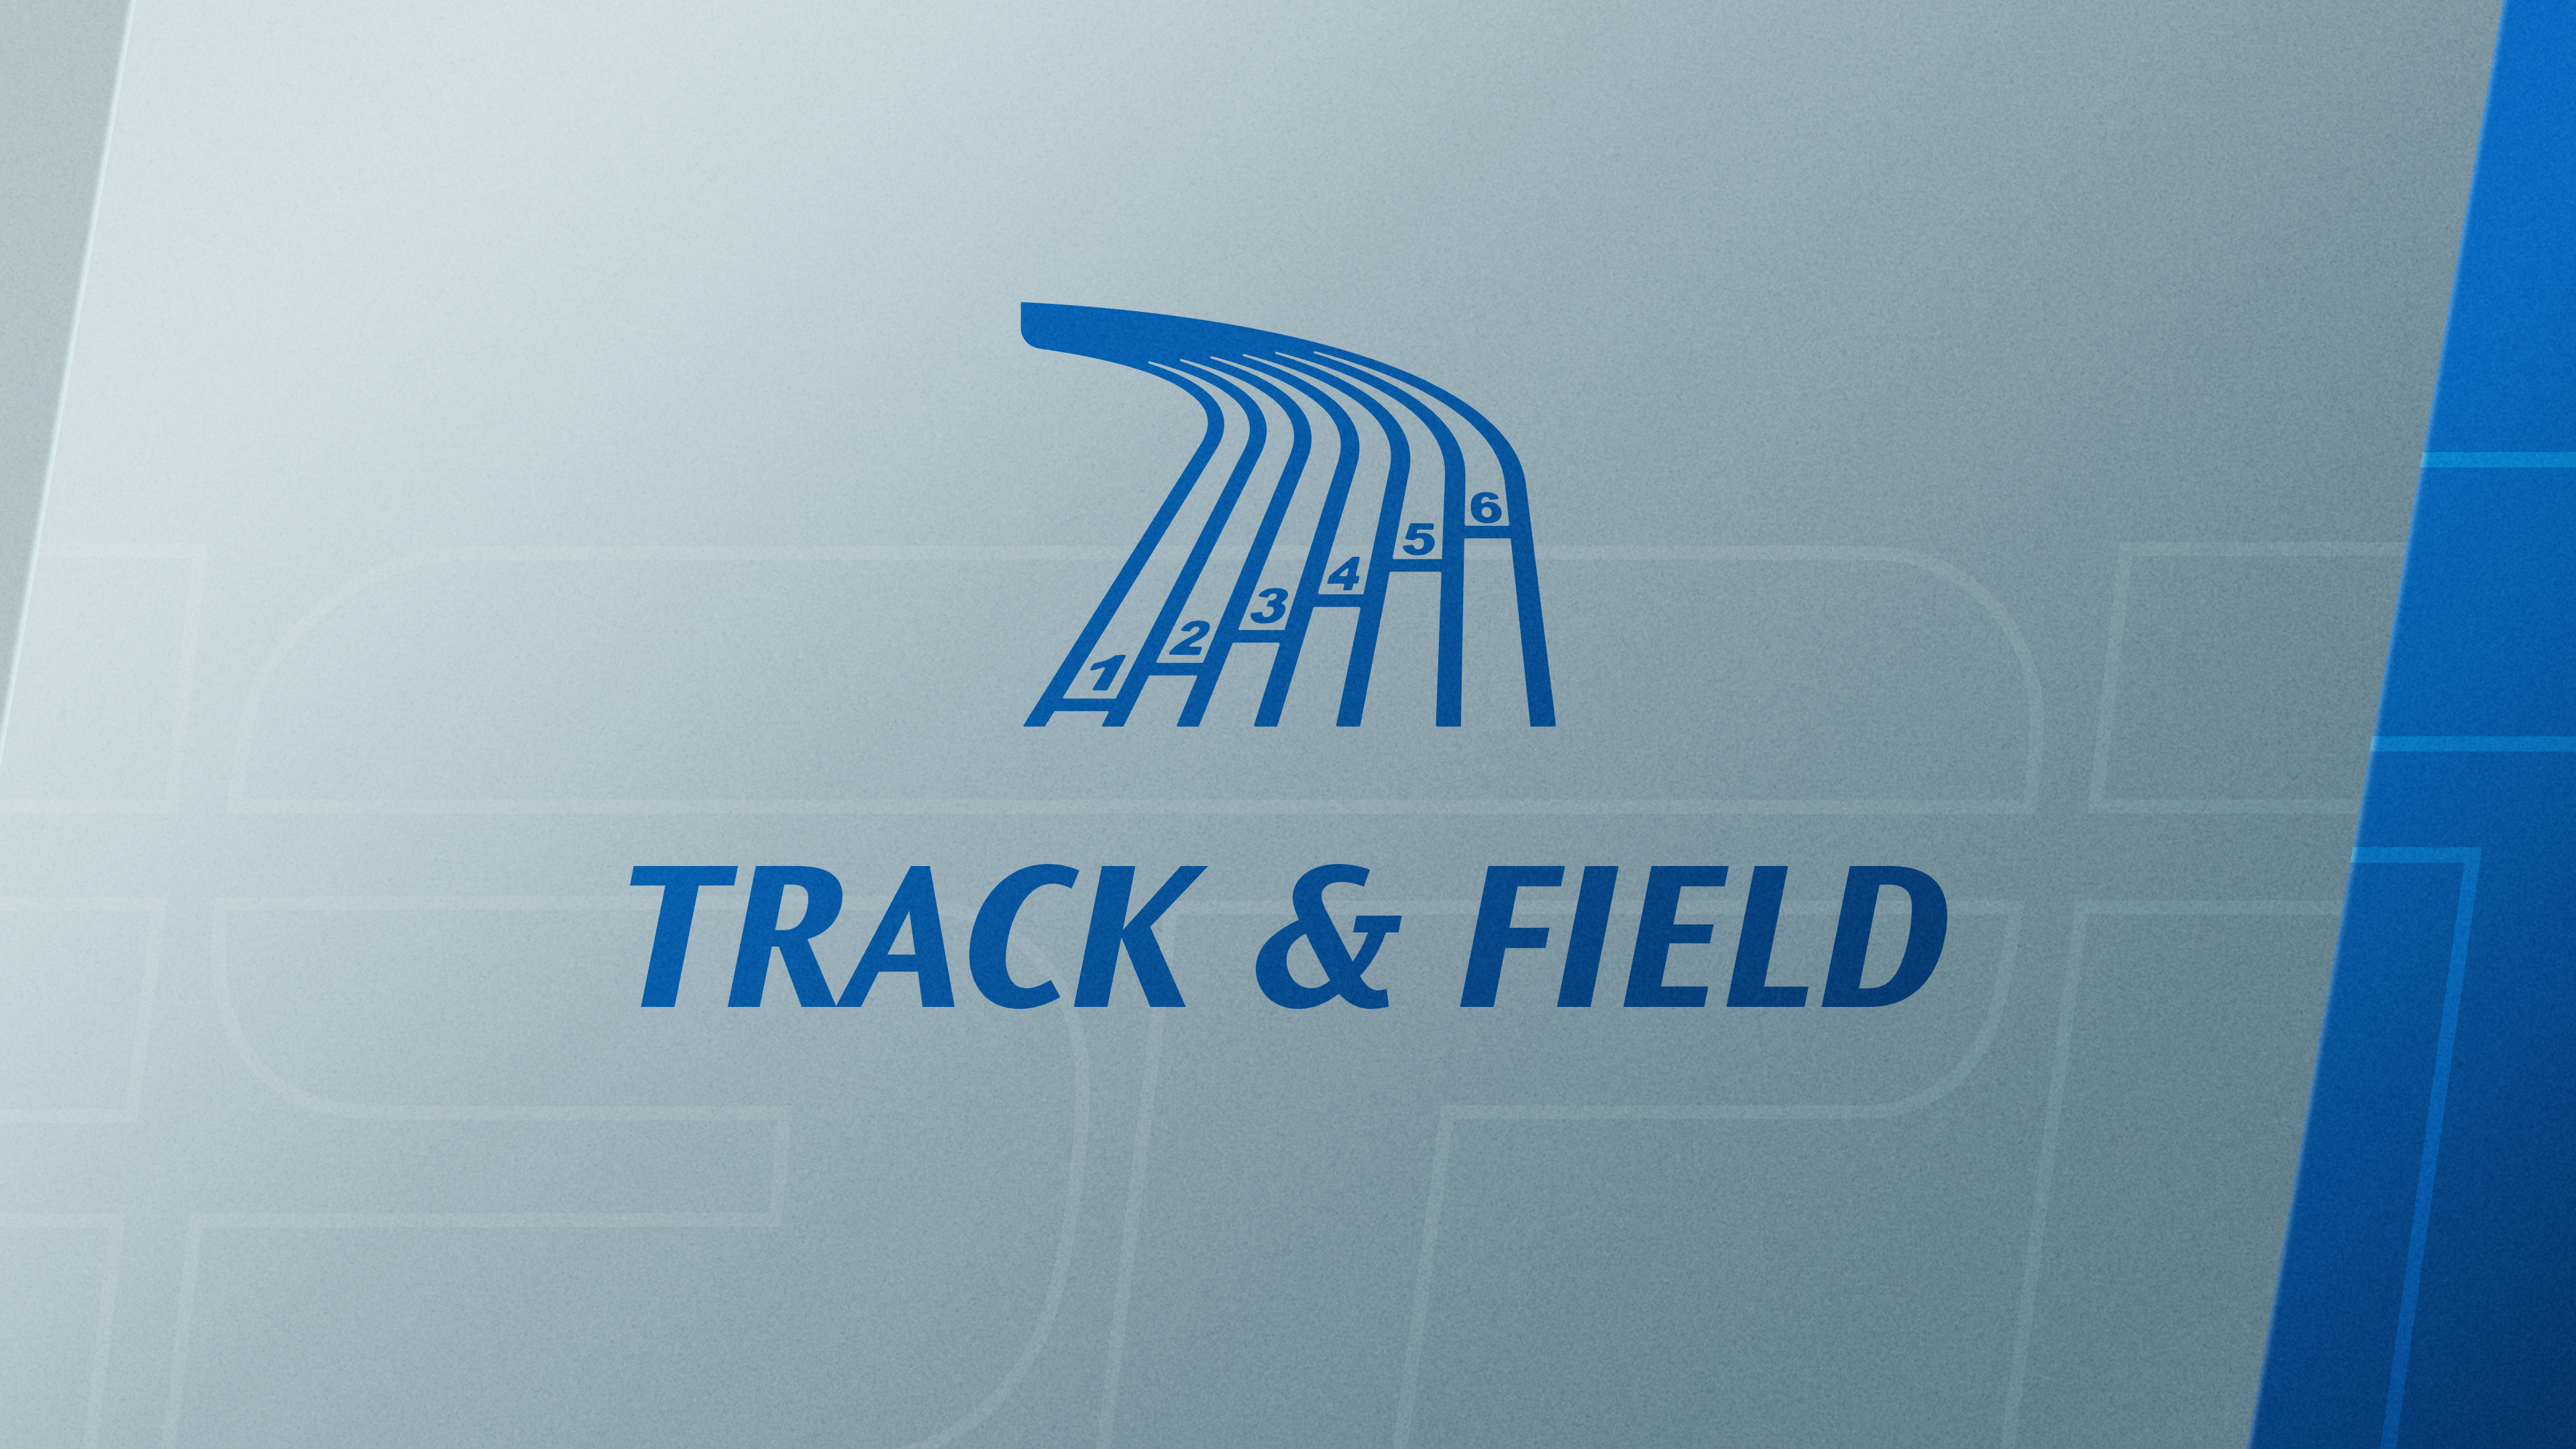 Ohio State, Ole Miss, Tennessee, USC and Miami (Track & Field)